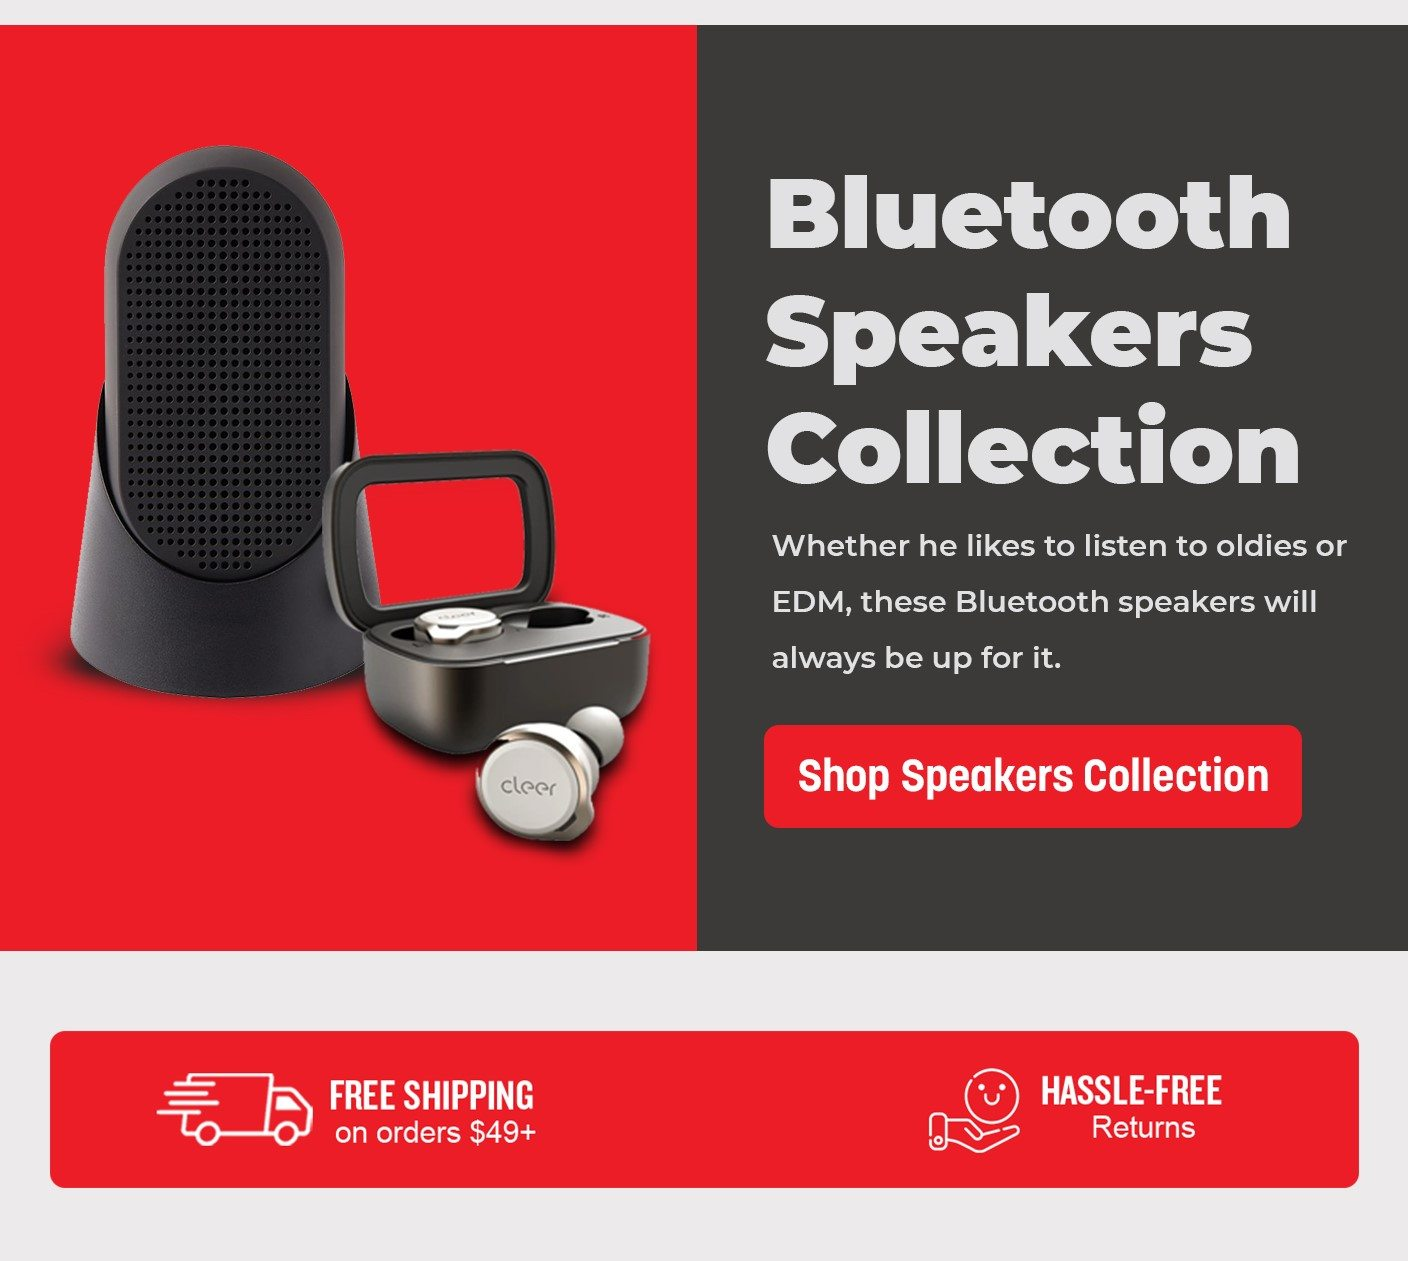 Bluetooth Speakers Collection